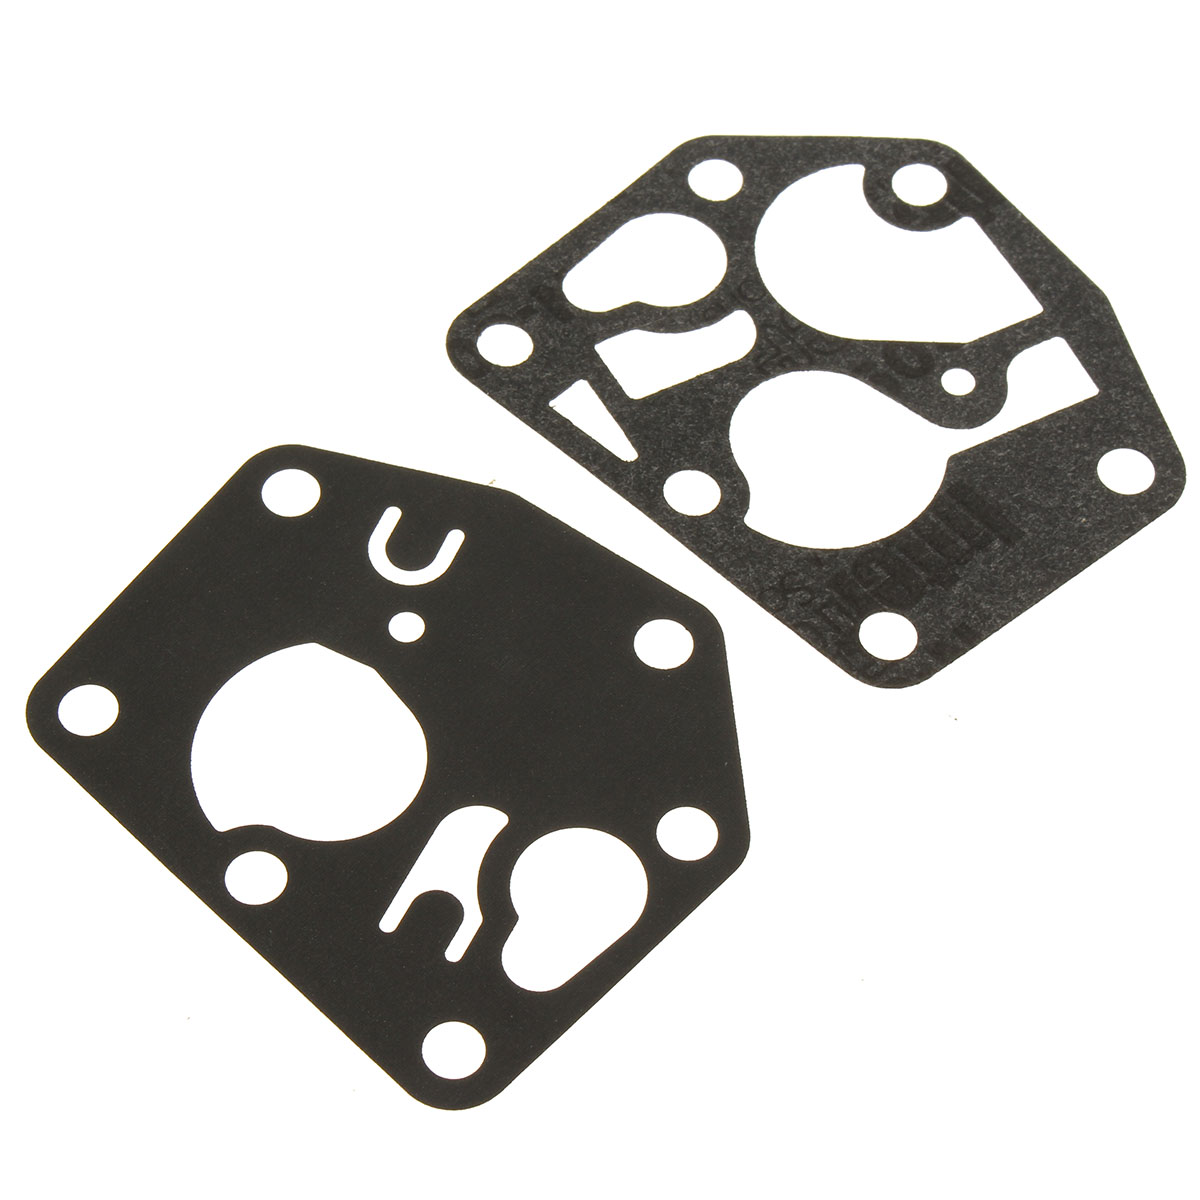 for <font><b>Briggs</b></font> & Stratton Carburettor Carb Diaphragm Gasket Kit Set 3.5HP & 3.75HP 495770 <font><b>795083</b></font> image